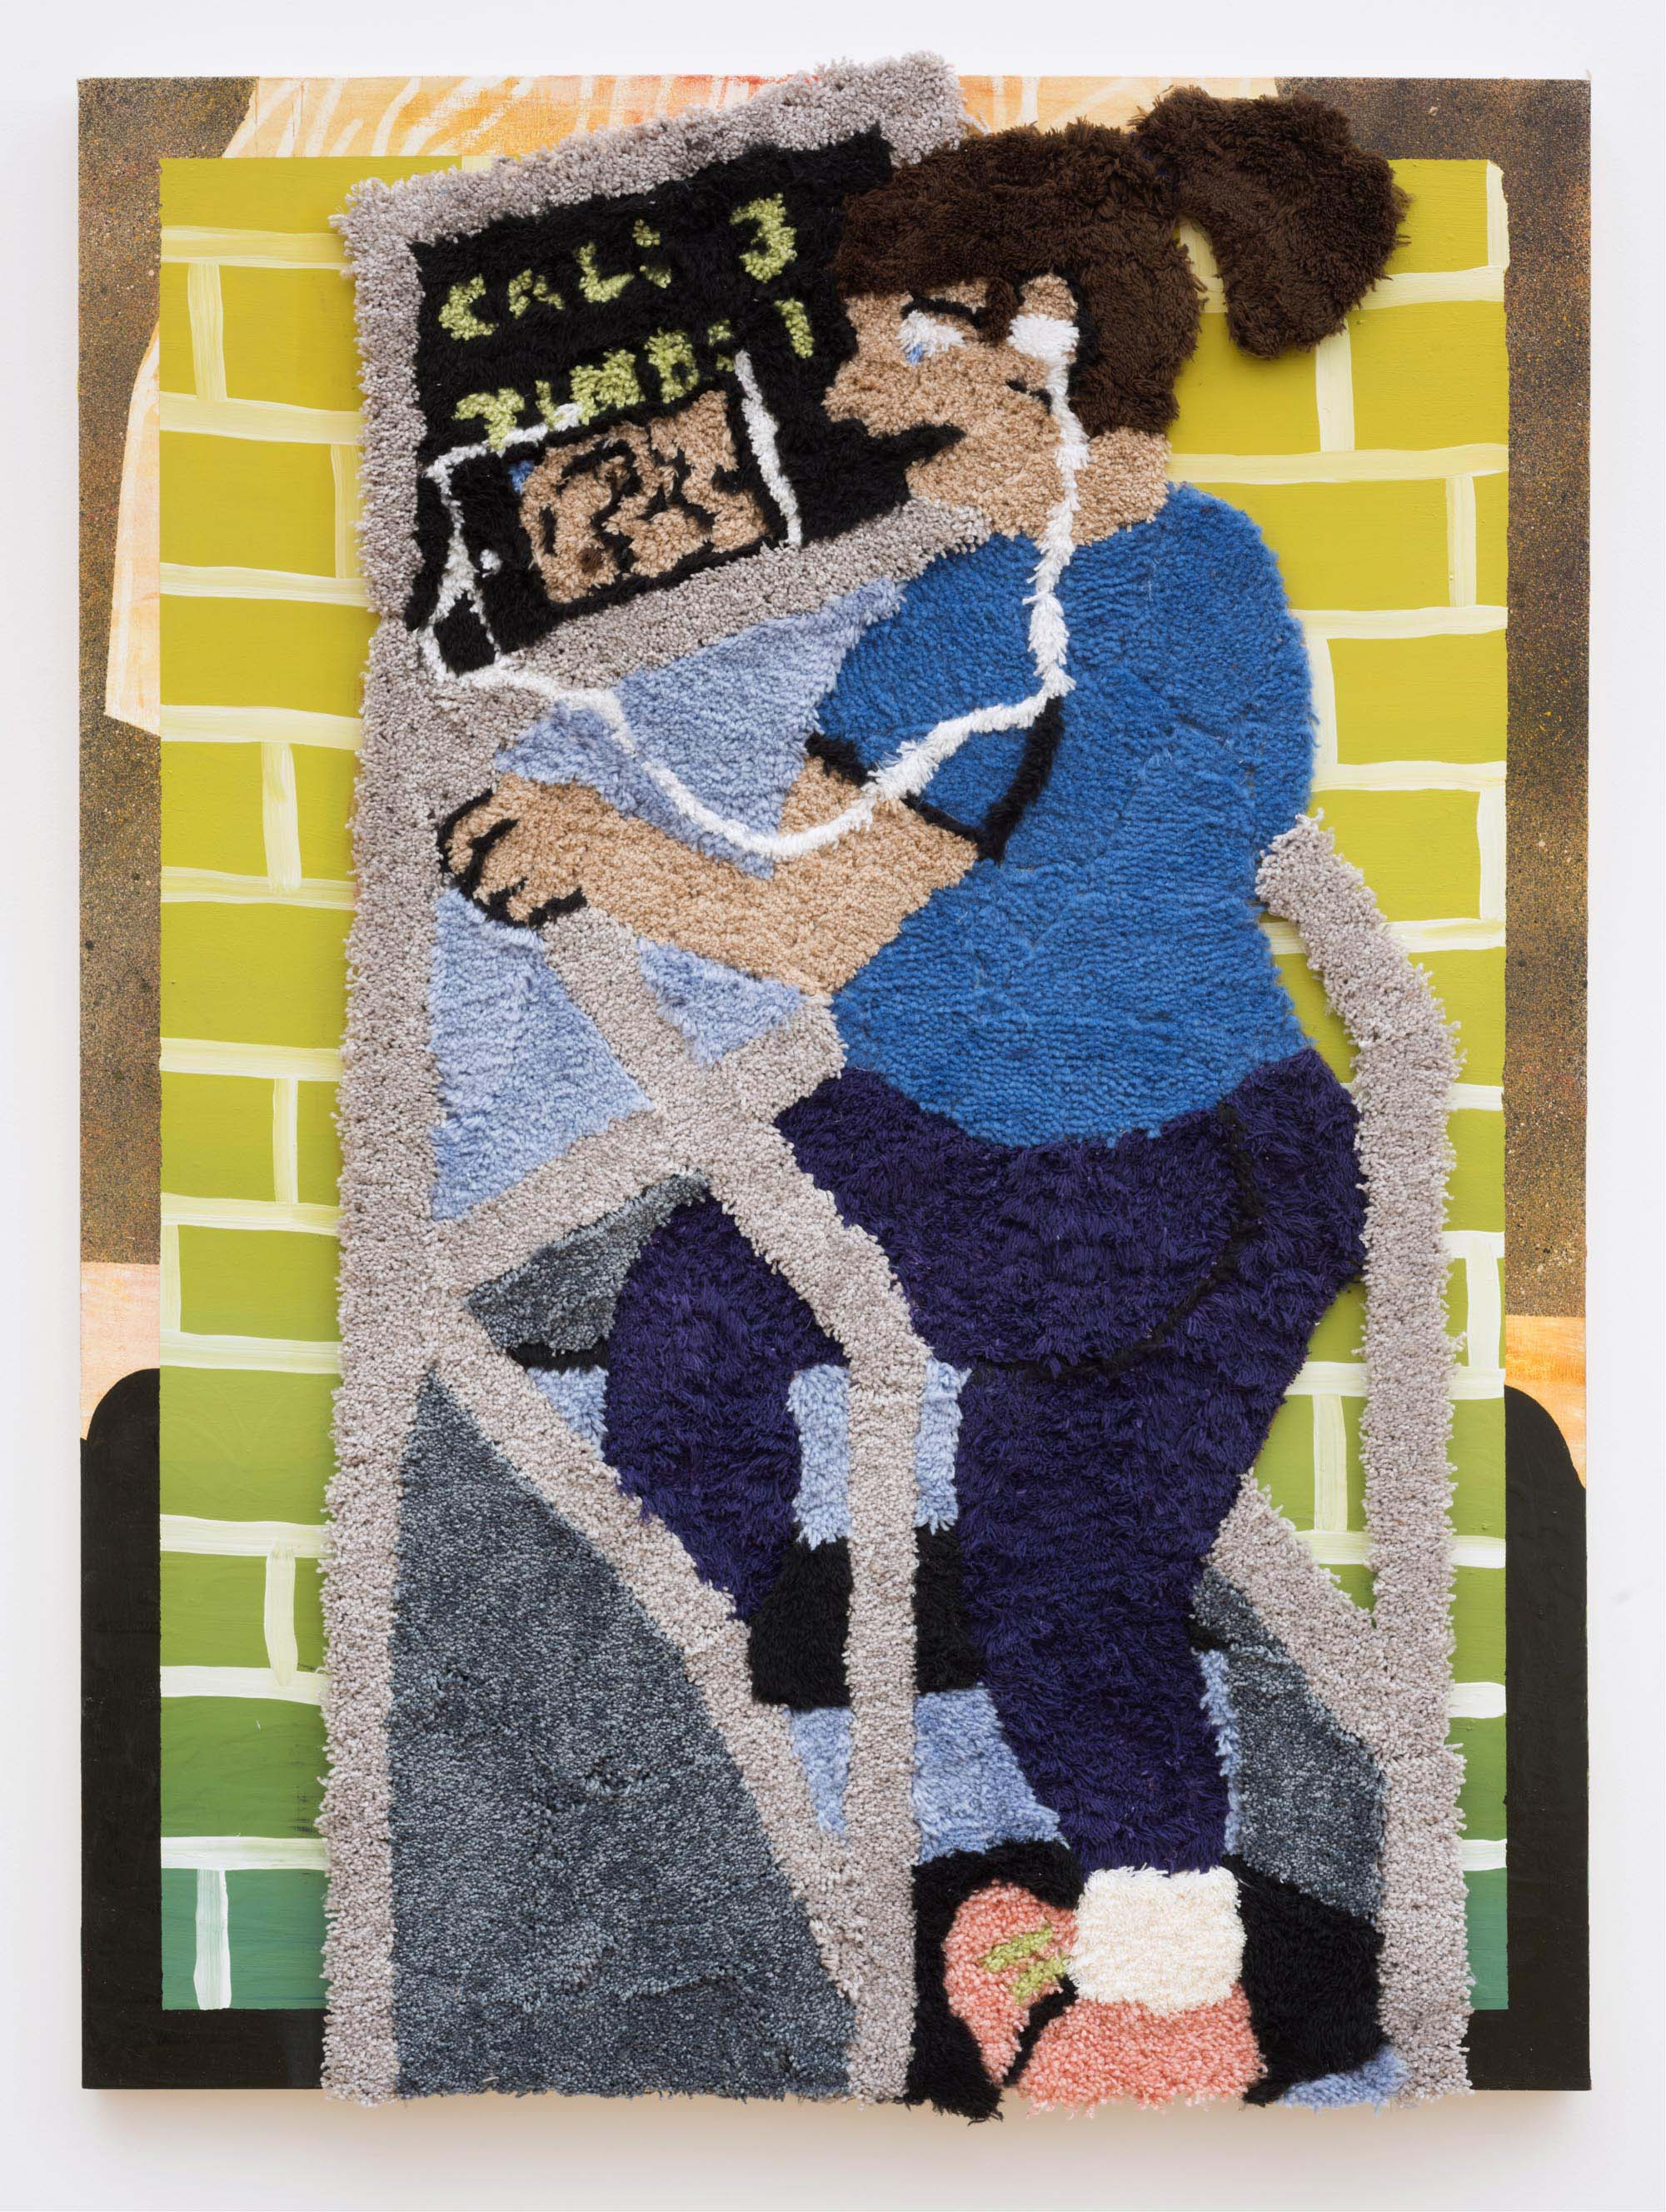 Jessica Campbell, Watching My 600-Lb Life at the Gym, Acrylic rug and oil on panel, 48